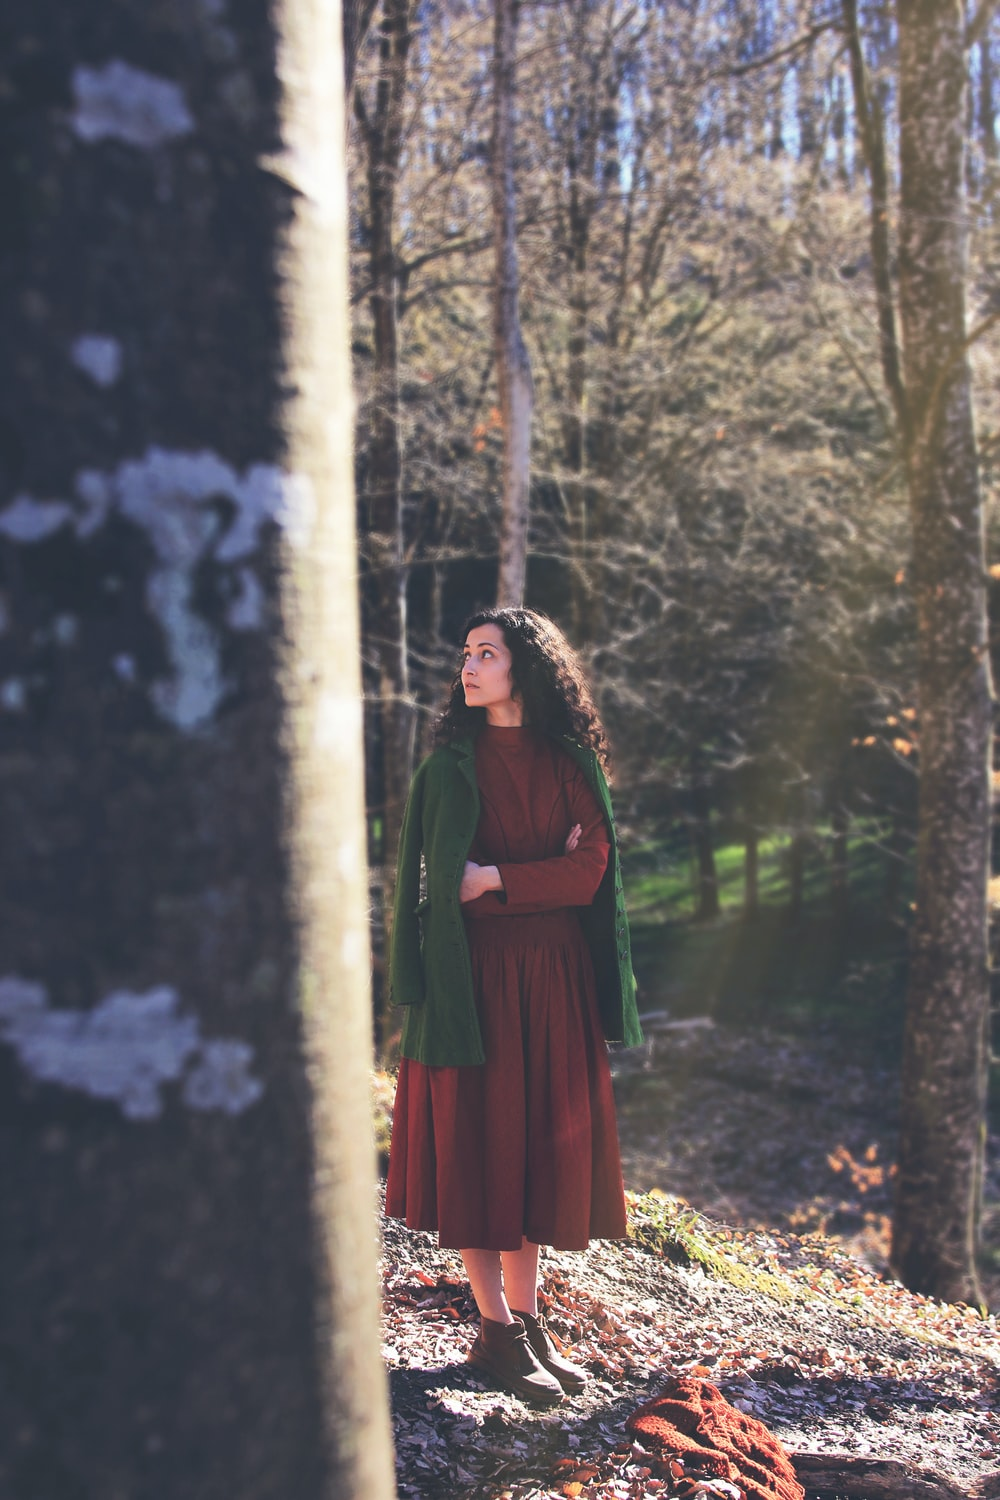 woman wearing red long sleeved dress walking in middle of woods